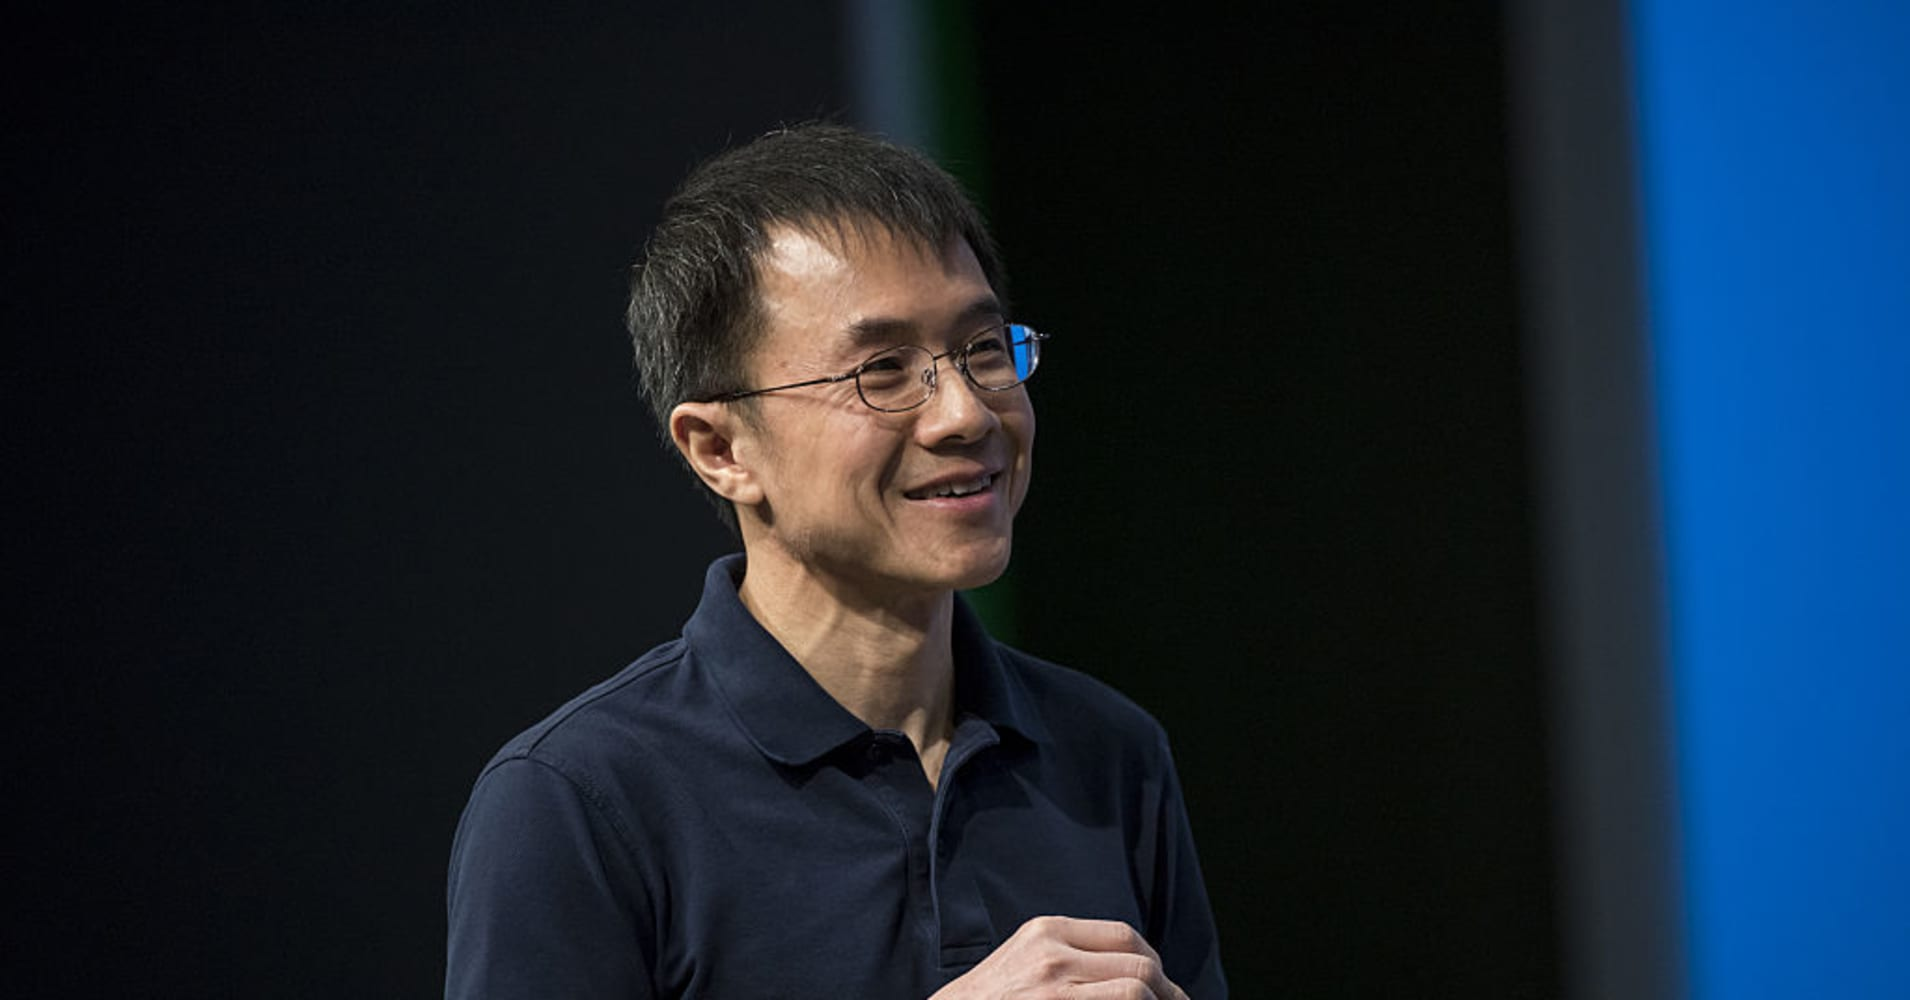 Y Combinator to set up China arm with former Baidu executive Qi Lu as chief